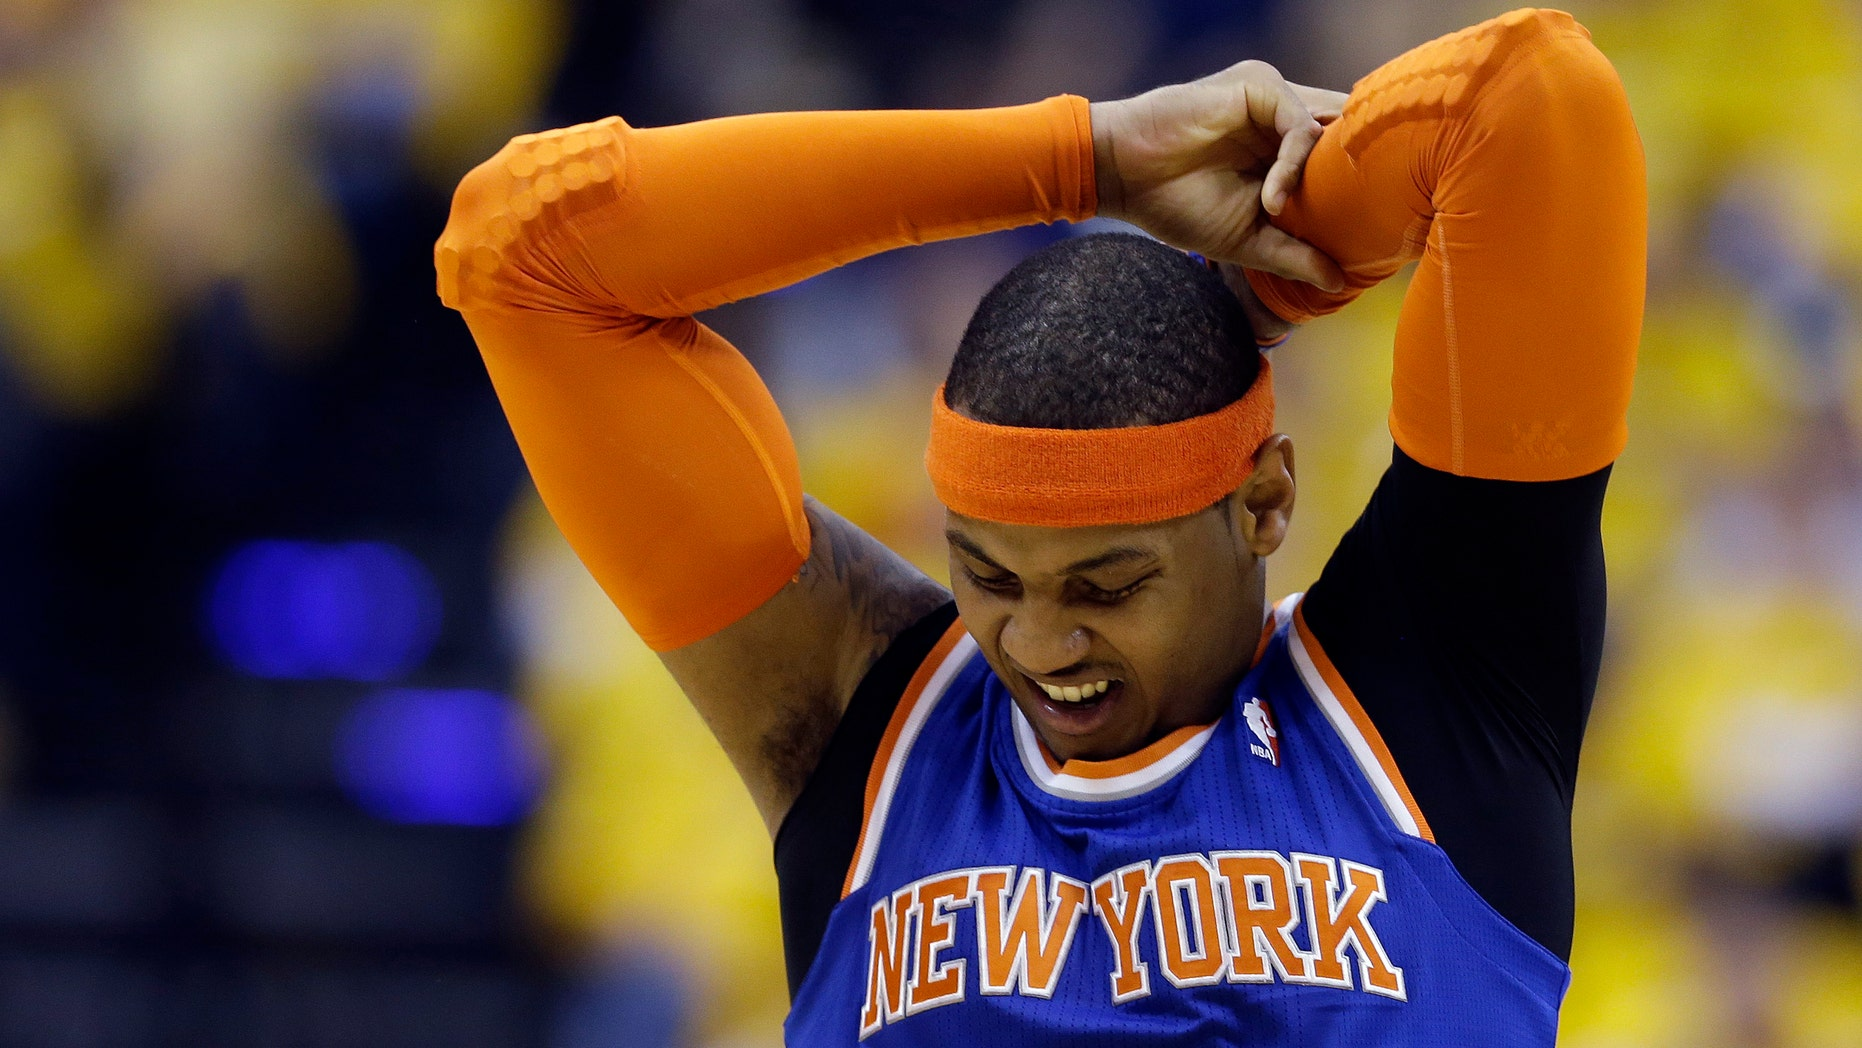 New York Knicks' Carmelo Anthony stretches during the first half of Game 3 of an Eastern Conference semifinal NBA basketball playoff series against the Indiana Pacers on Saturday, May 11, 2013, in Indianapolis. (AP Photo/Darron Cummings)